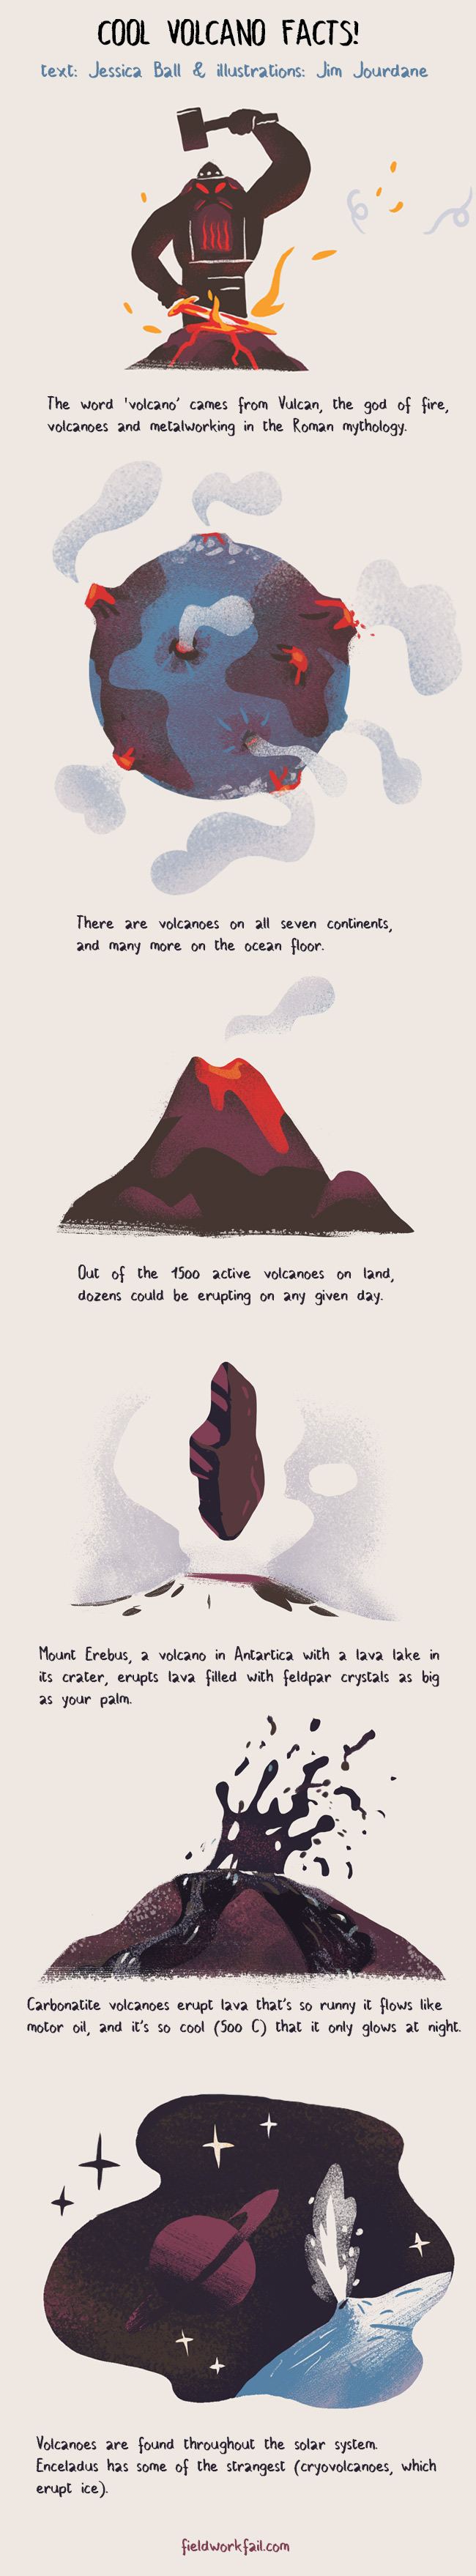 cool volcano facts